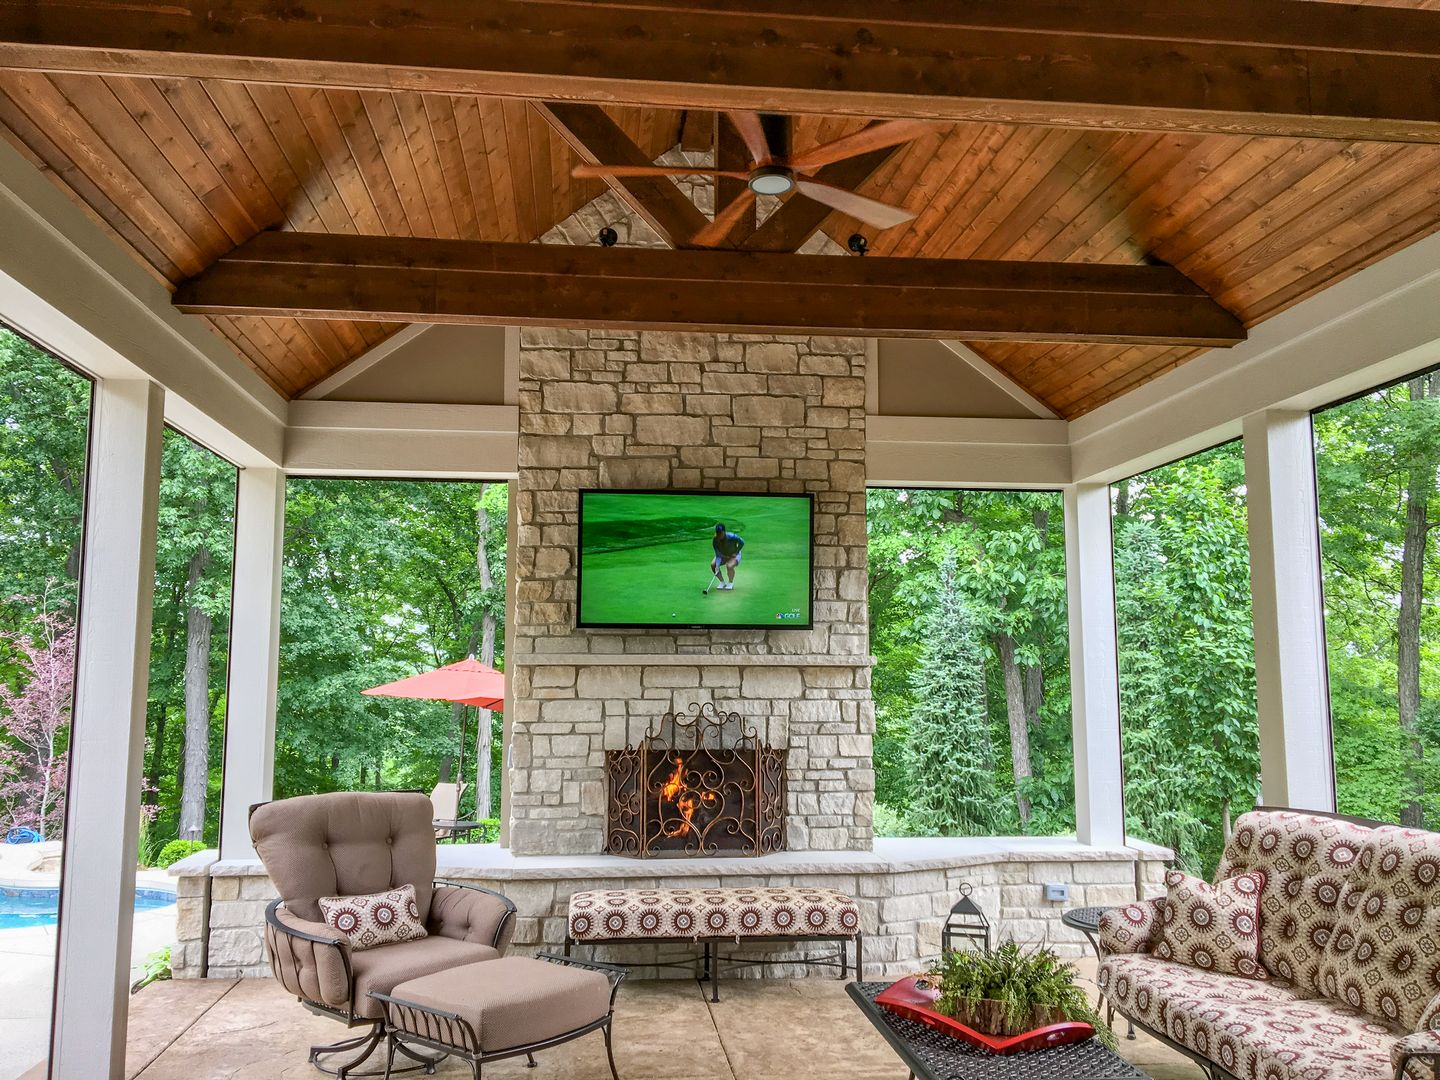 Enjoy this fireplace with family and friends